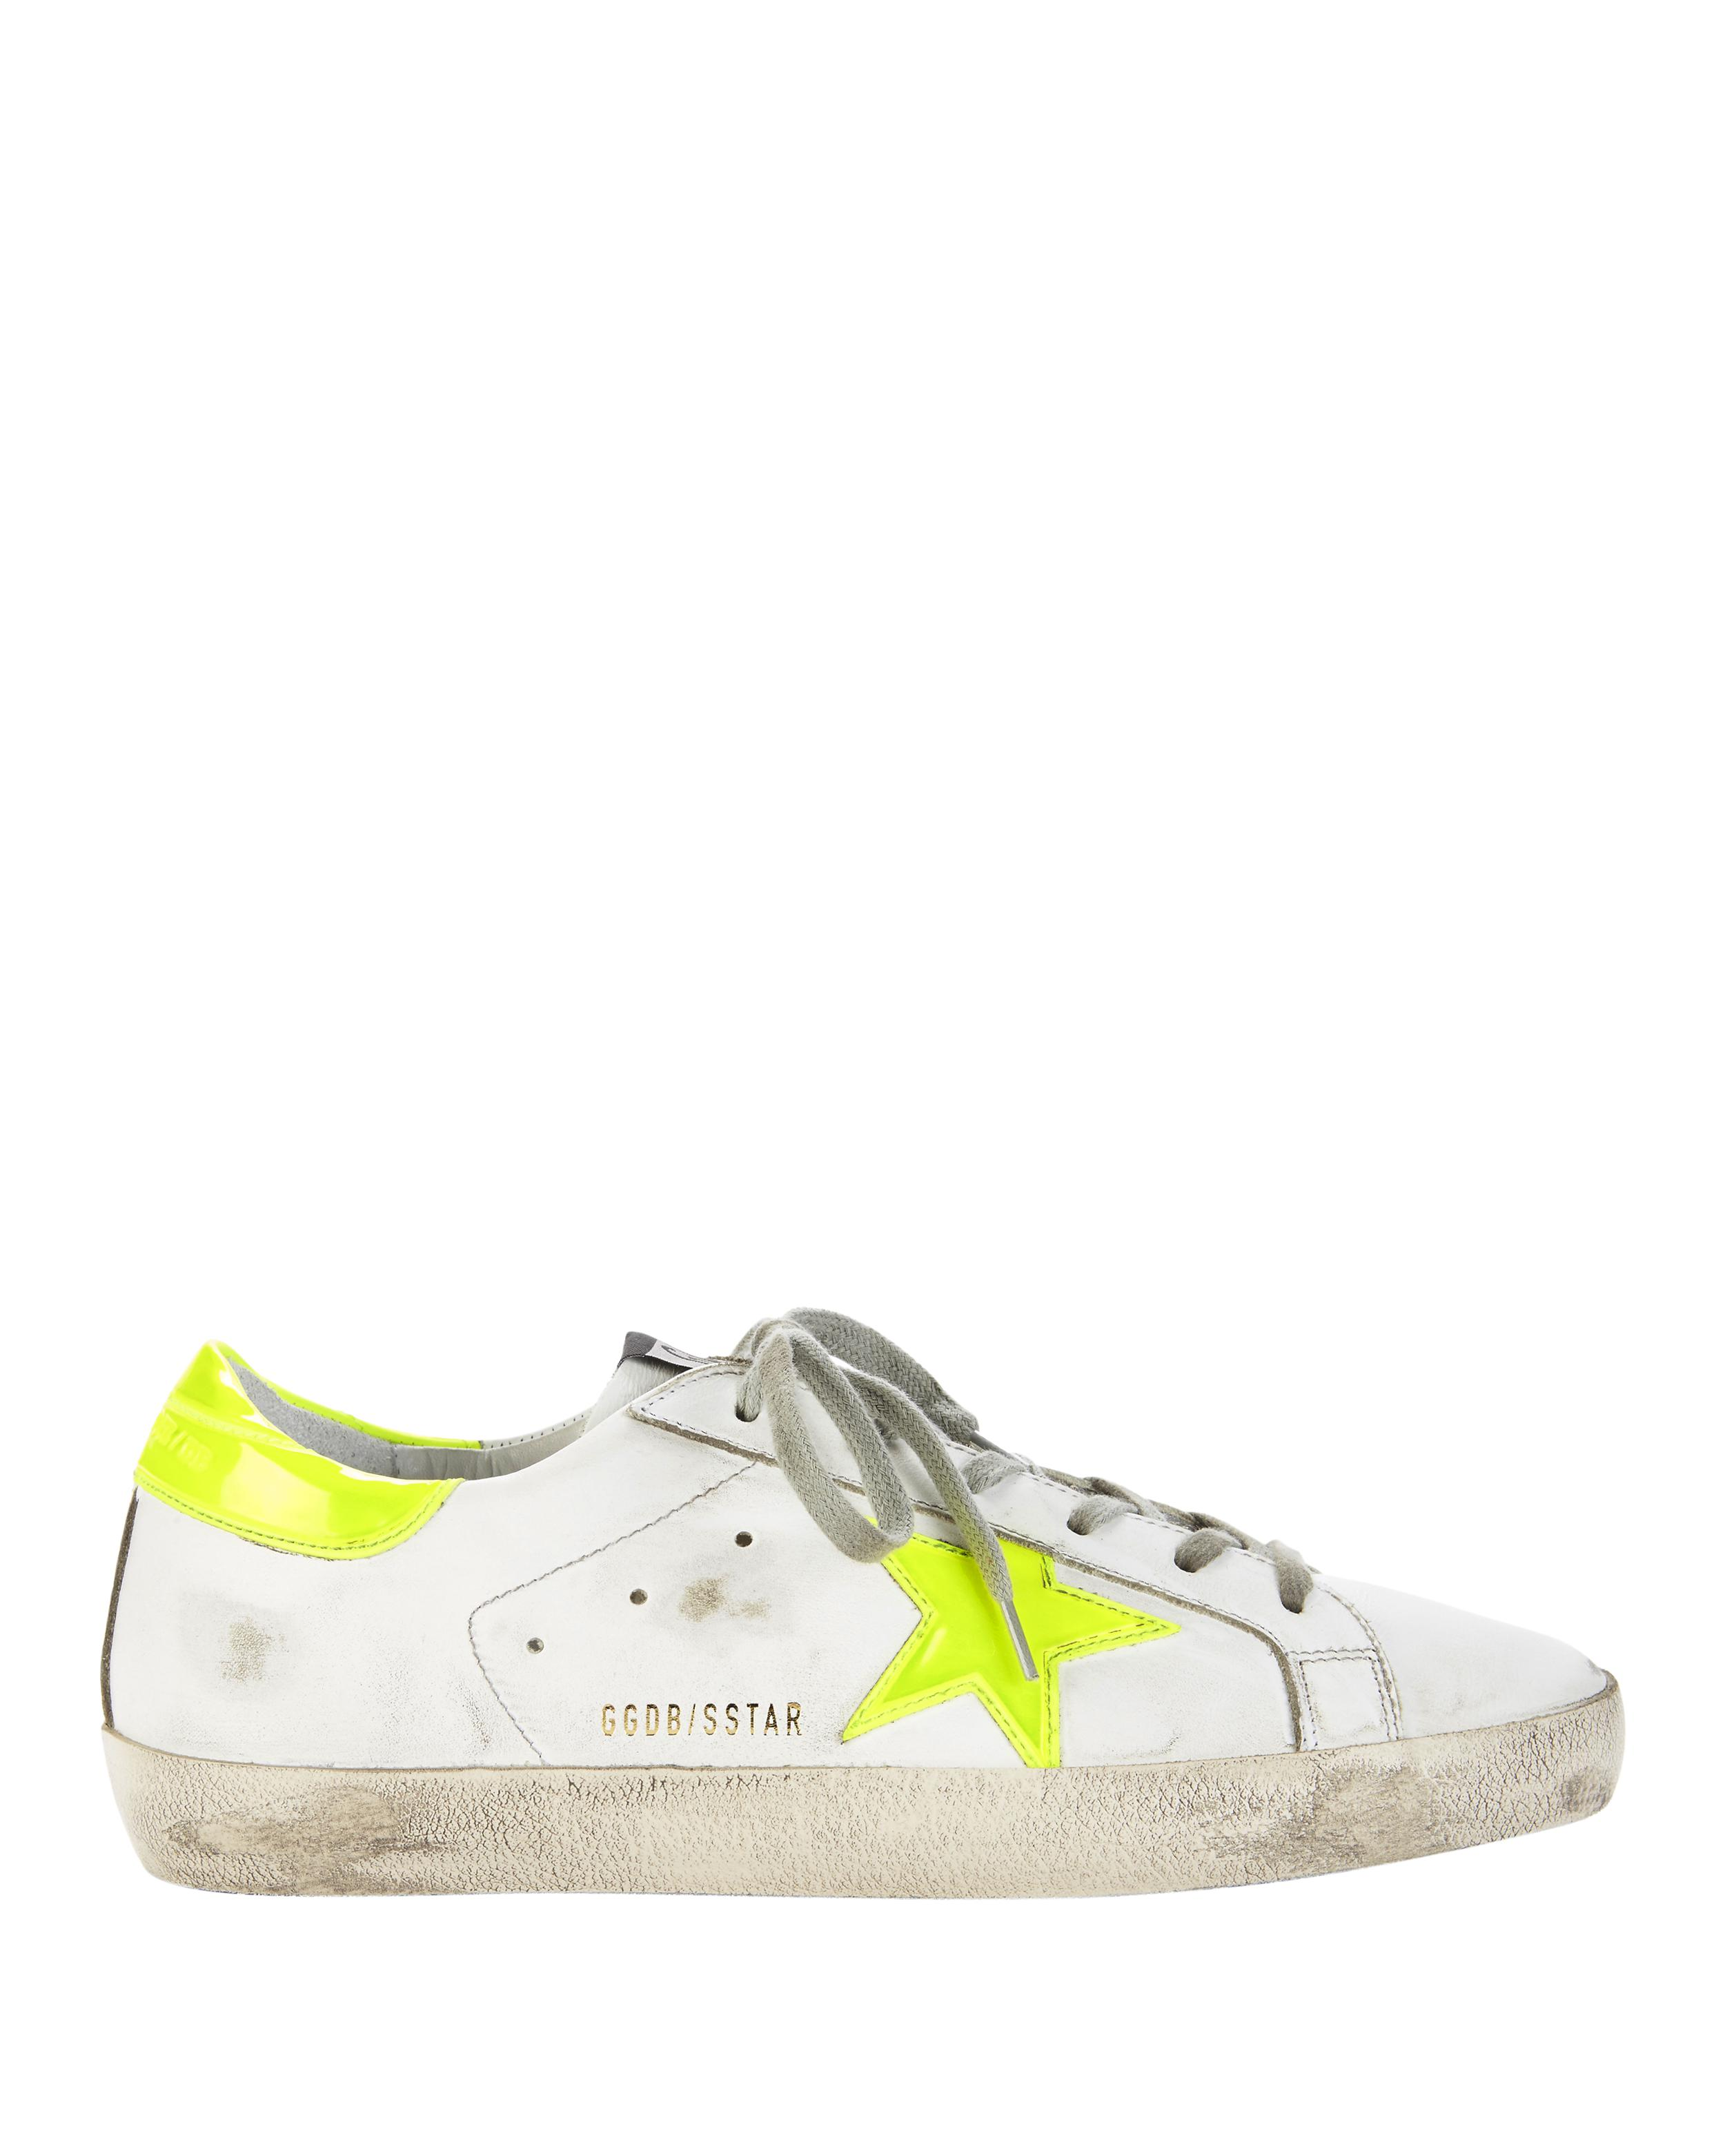 White Neon Yellow Superstar sneakers Golden Goose Real Free Shipping Largest Supplier UL8kJ1tyXm